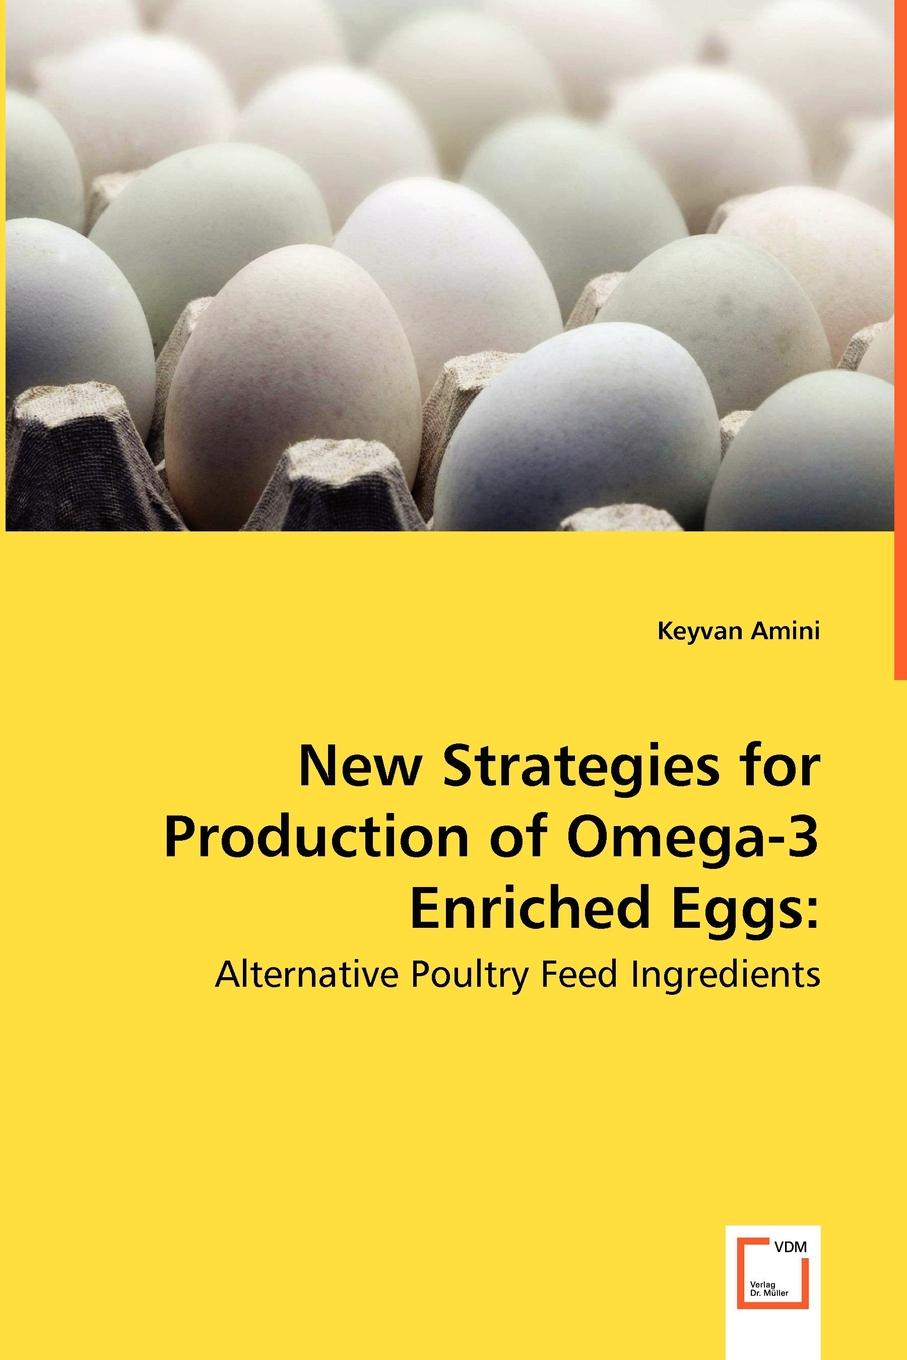 Keyvan Amini New Strategies for Production of Omega-3 Enriched Eggs. Alternative Poultry Feed Ingredients produce omega 3 fatty acids enriched eggs by using fish oil